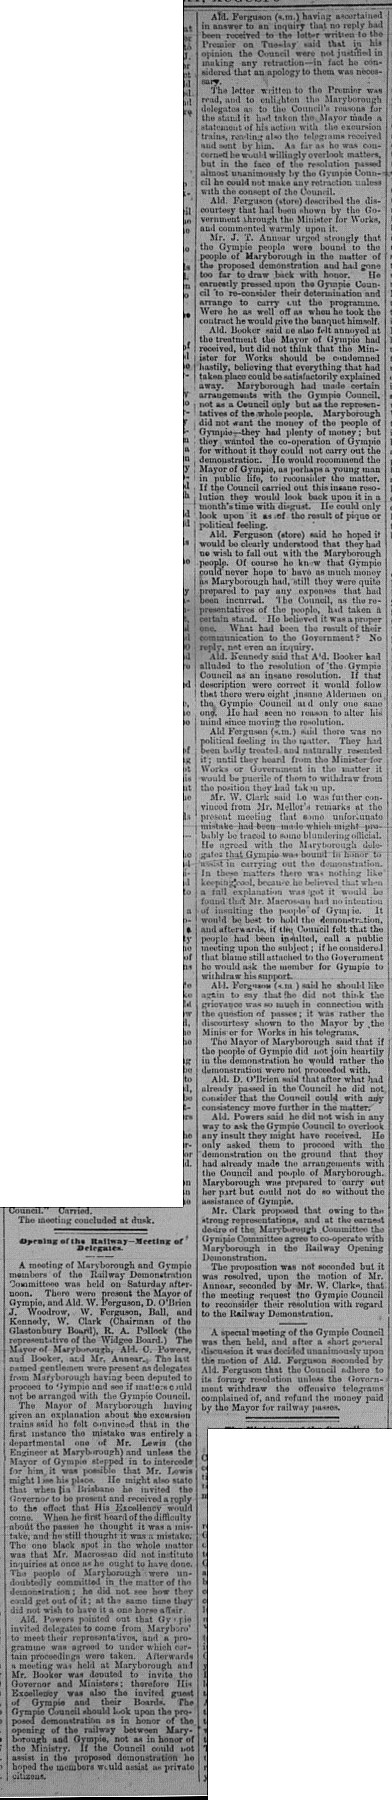 Gympie Times, Wednesday, August 3, 1881 p. 3 Opening of Railway meeting of Delegates